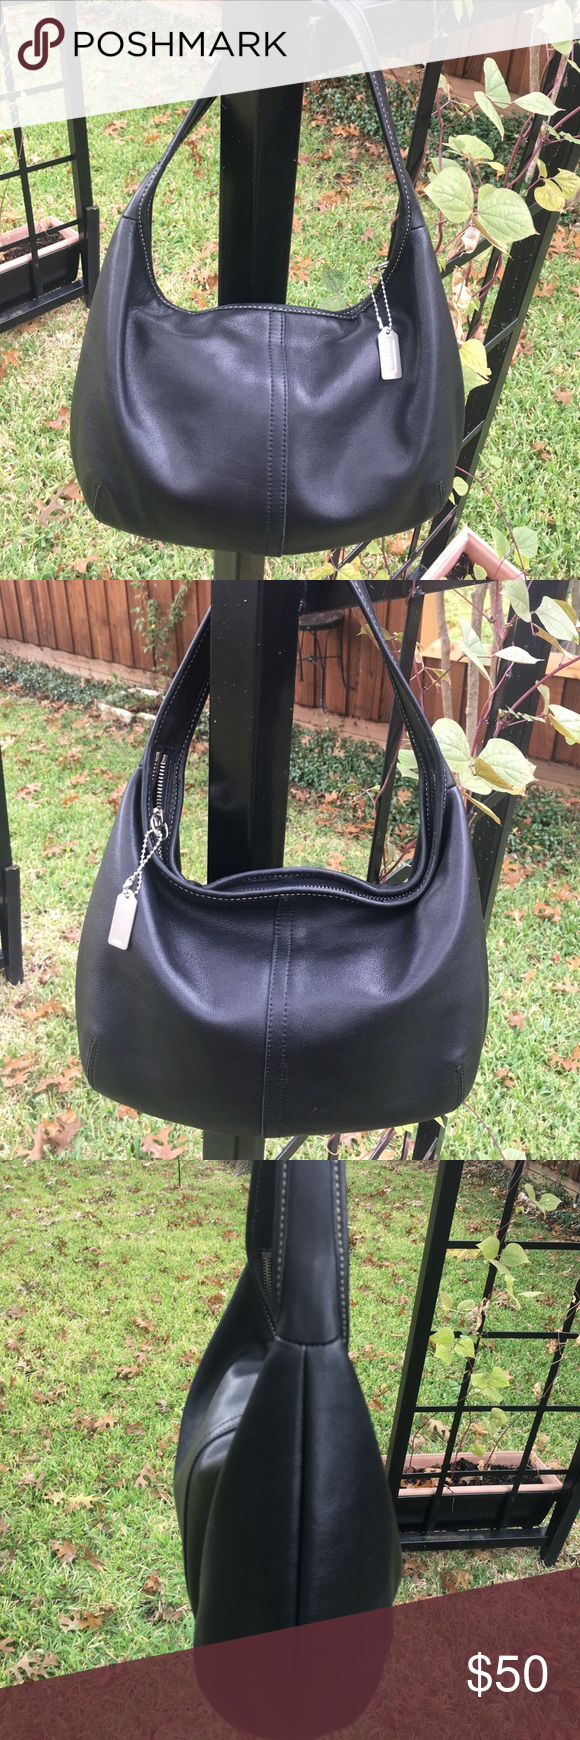 New Listing: Authentic Coach purse #9219 Authentic Coach bag in sumptuous black leather. Original Coach hang tag. Creed #L2B 9219 Made in the United States circa 2002 - Refurbished to like new condition. Lining is pristine. Leather is beautifully conditioned with no scuffs or scrapes. Coach Bags Shoulder Bags